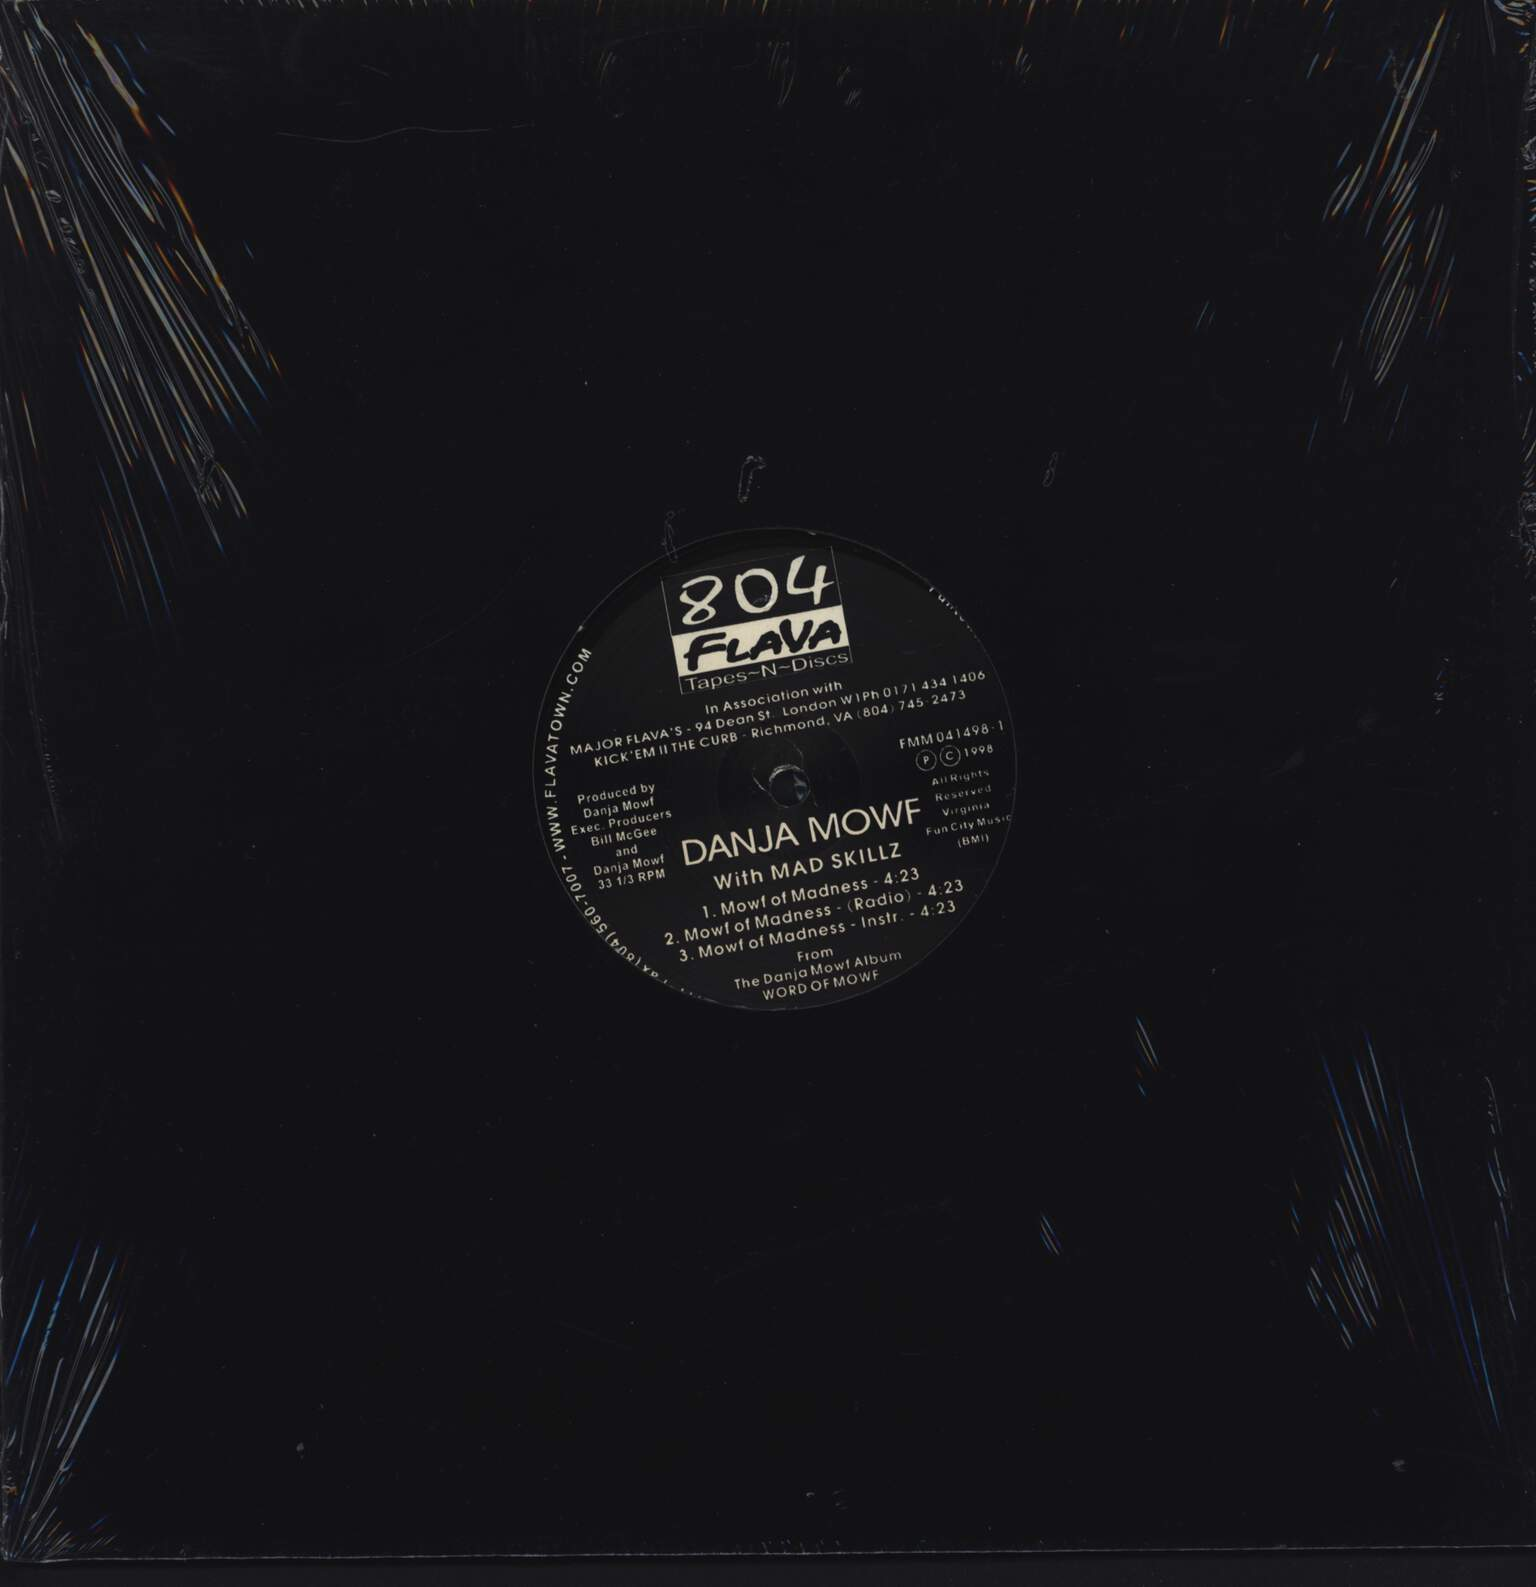 "Danja Mowf: Mowf Of Madness, 12"" Maxi Single (Vinyl)"